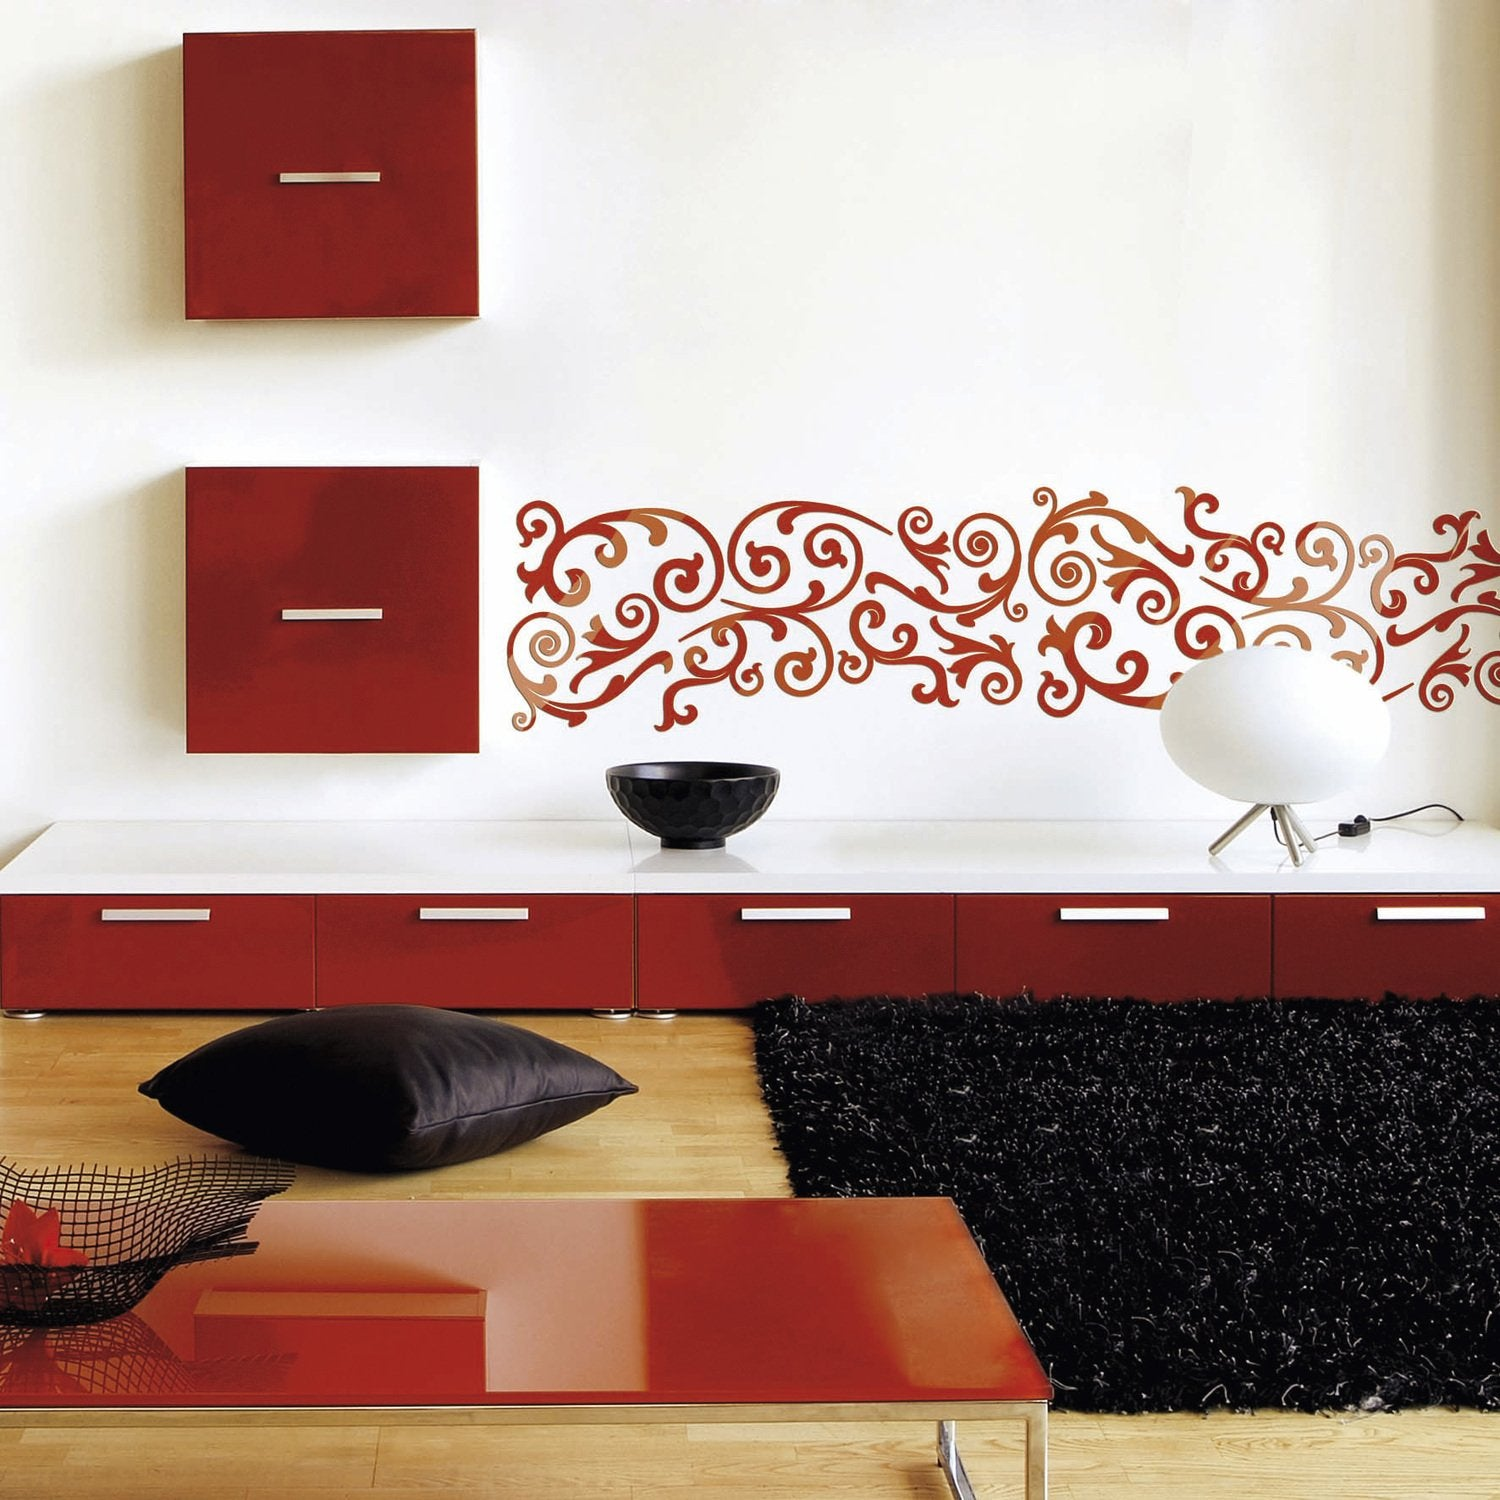 esprit ethnique pochoirs du monde leroy merlin. Black Bedroom Furniture Sets. Home Design Ideas